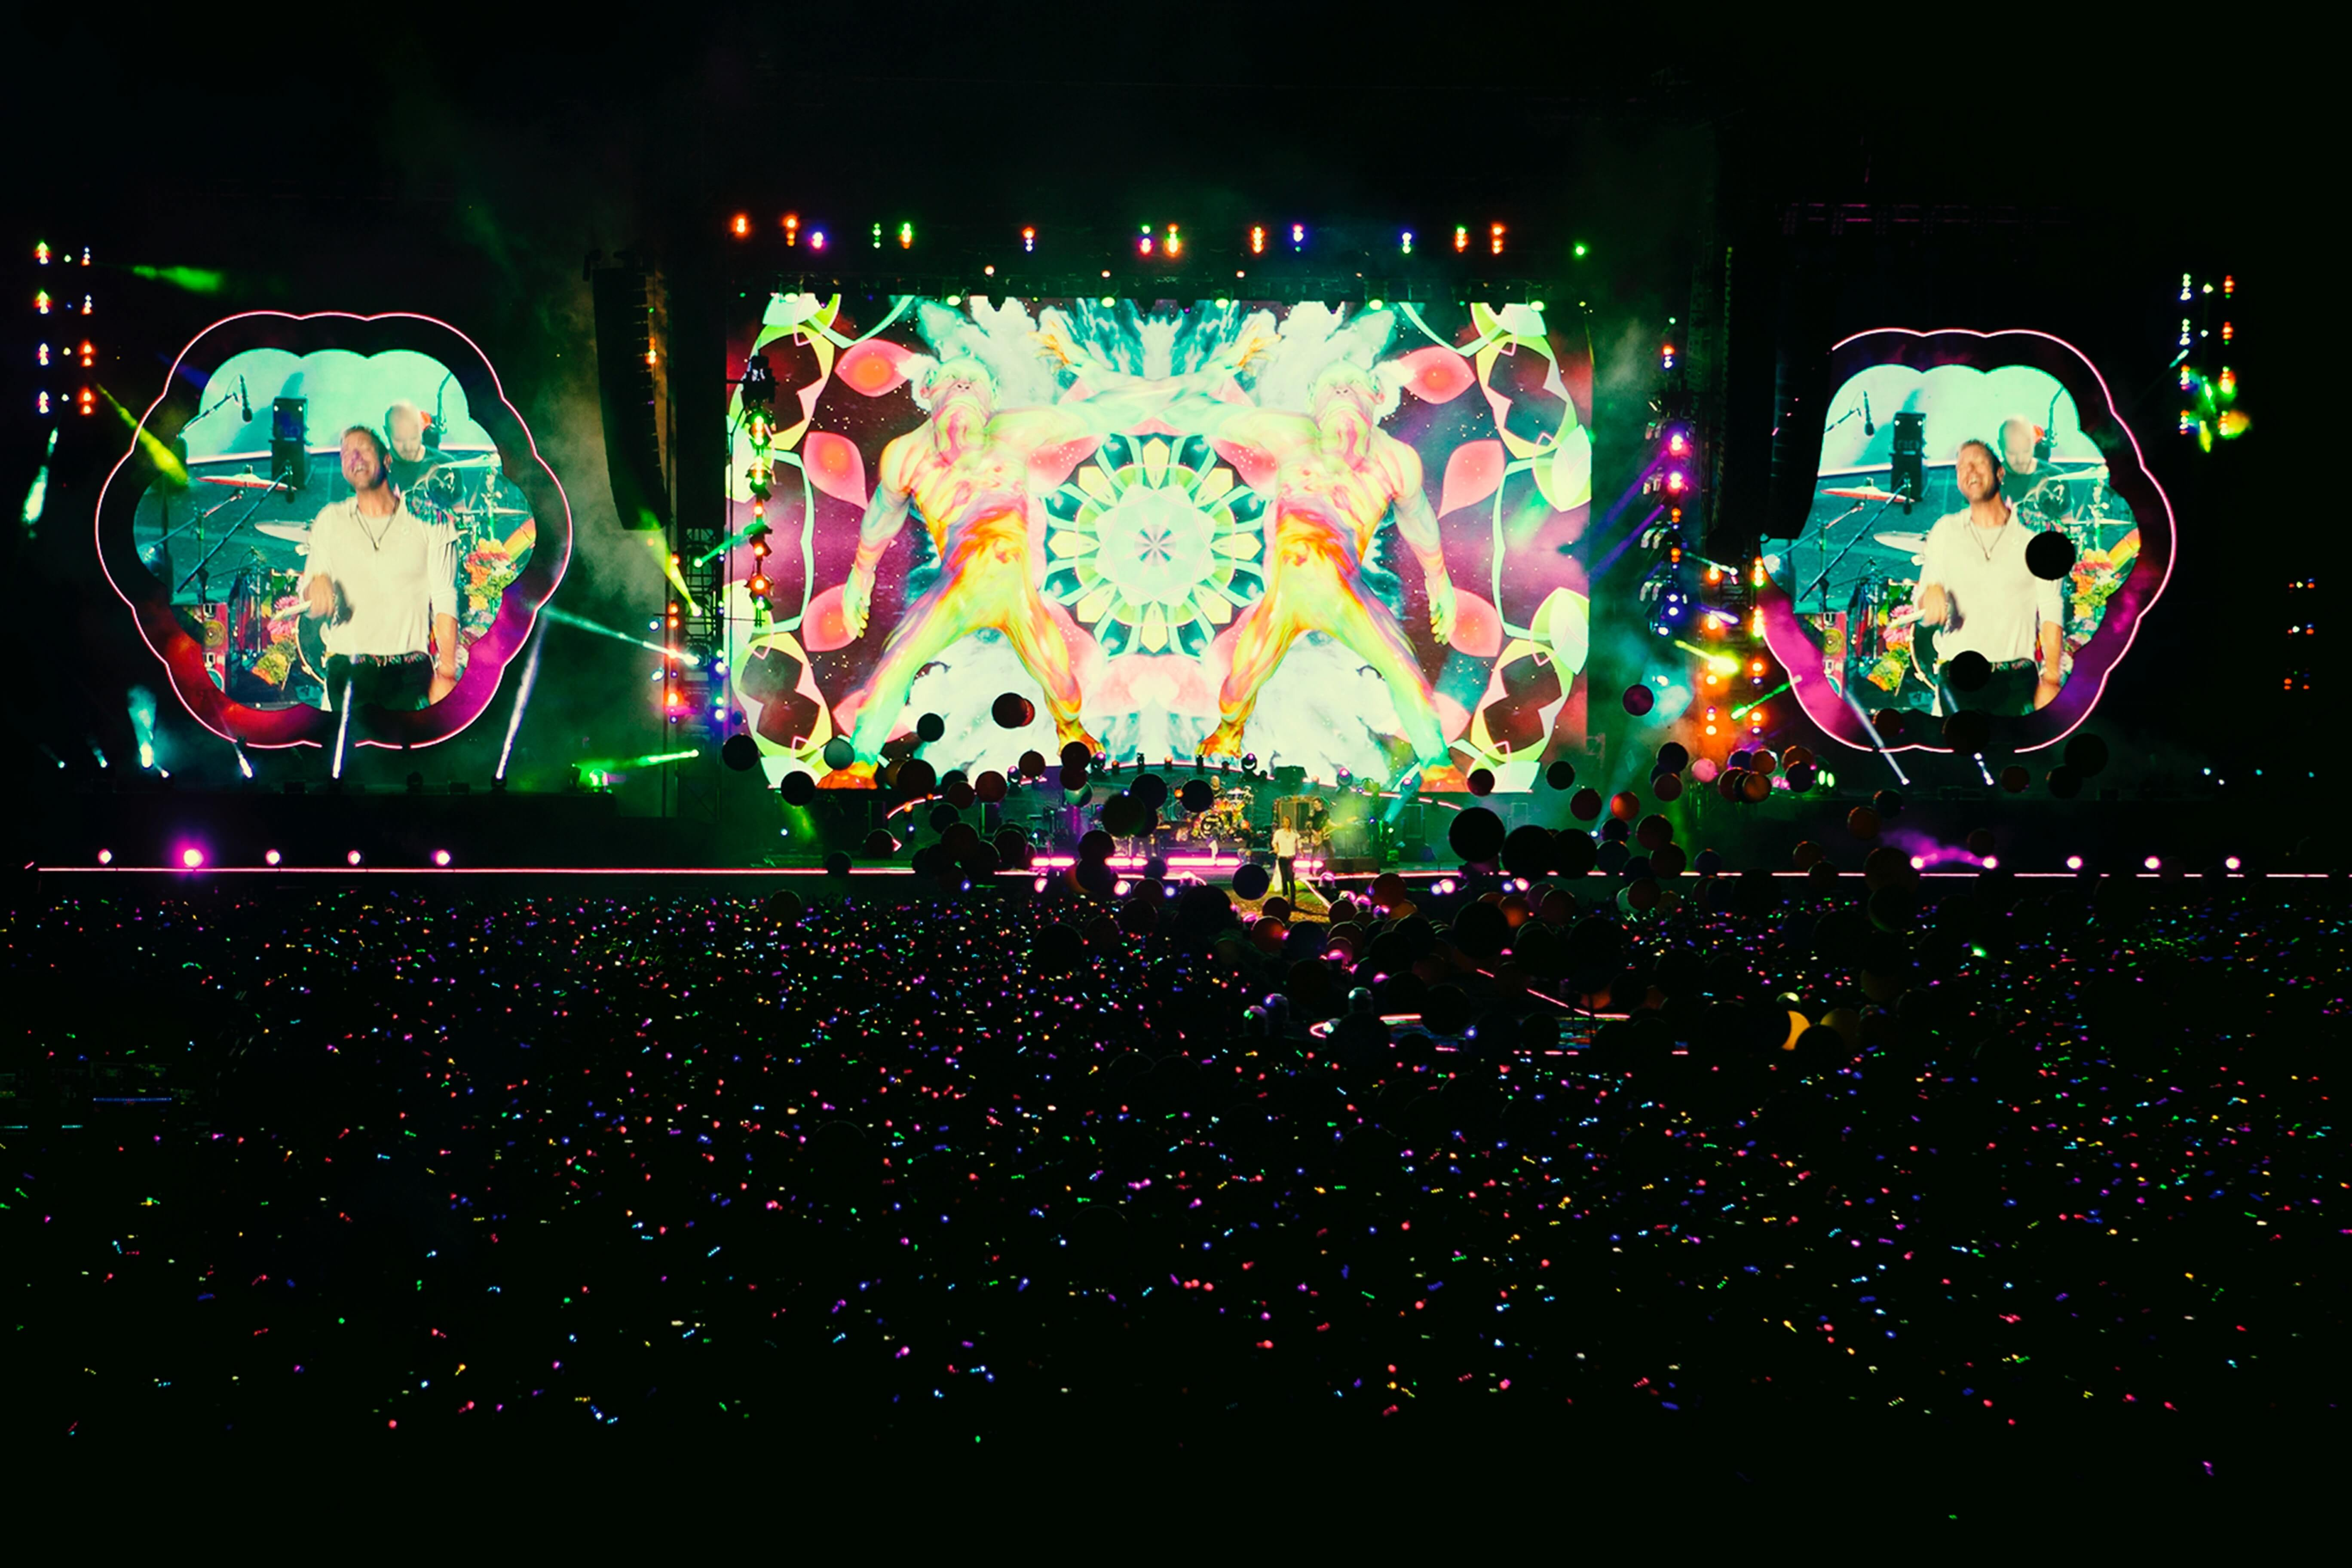 stage at a Coldplay concert